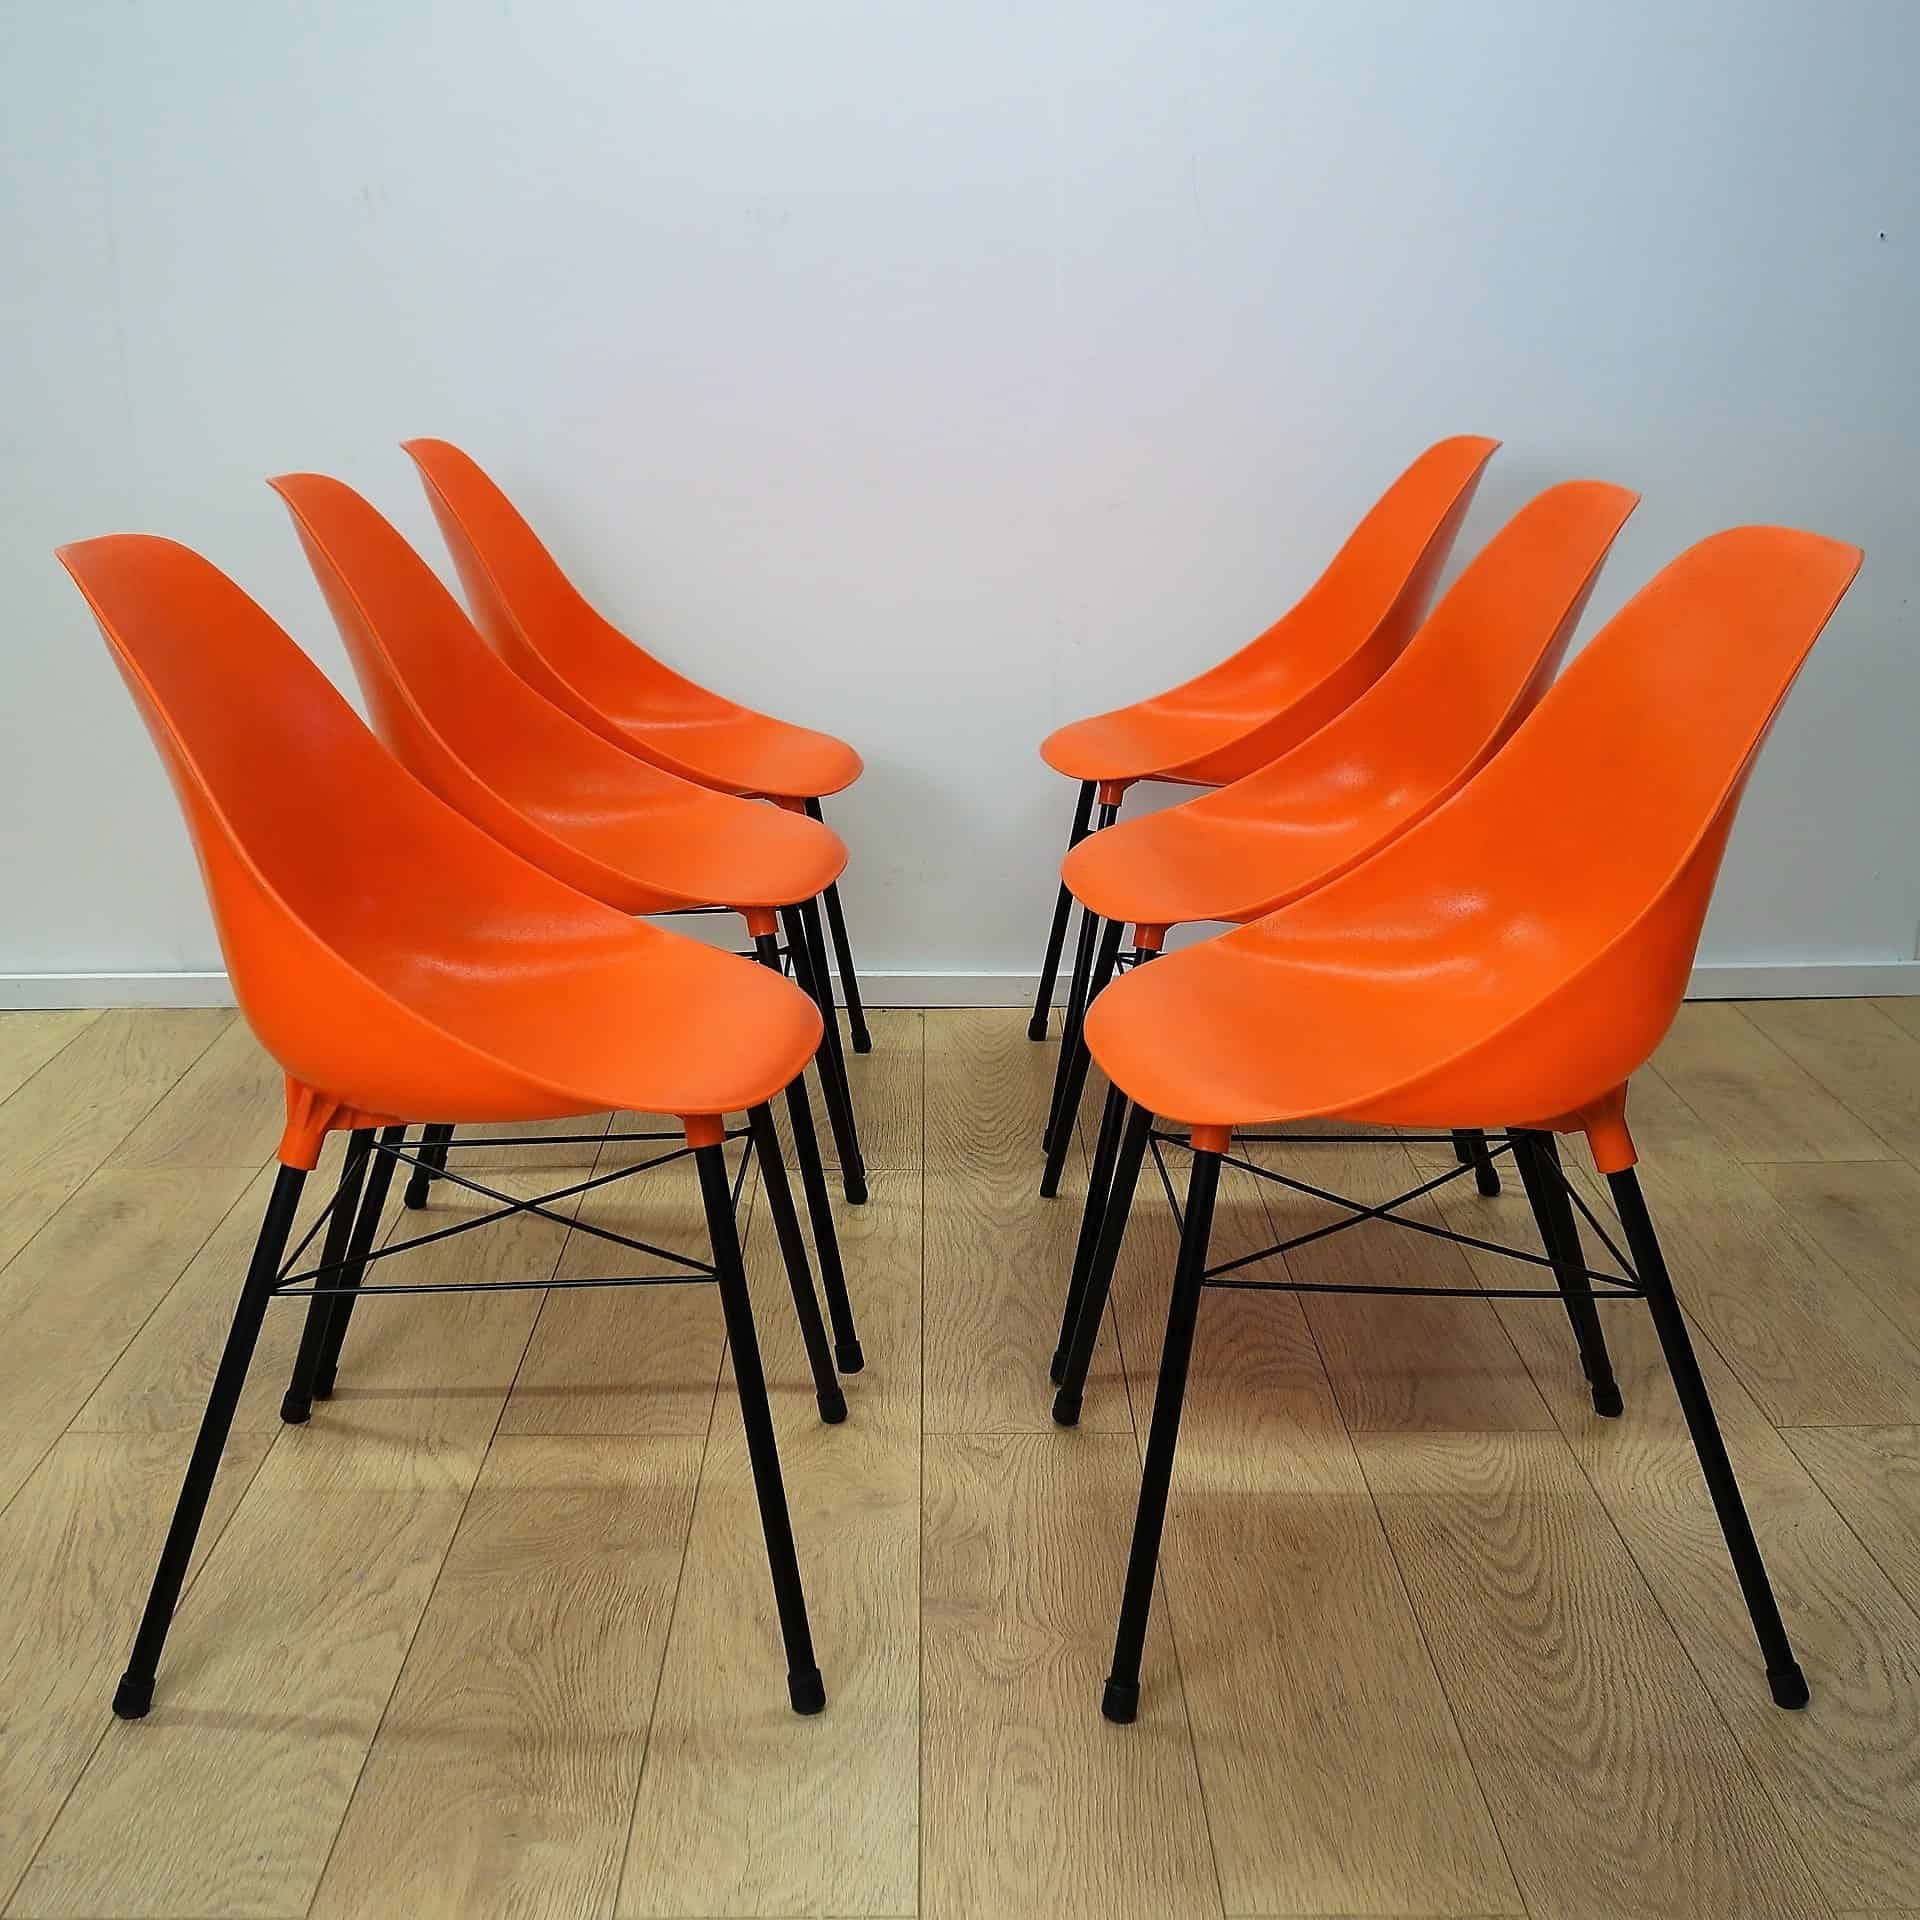 Set of 6 orange chairs by Sam Avedon 1962